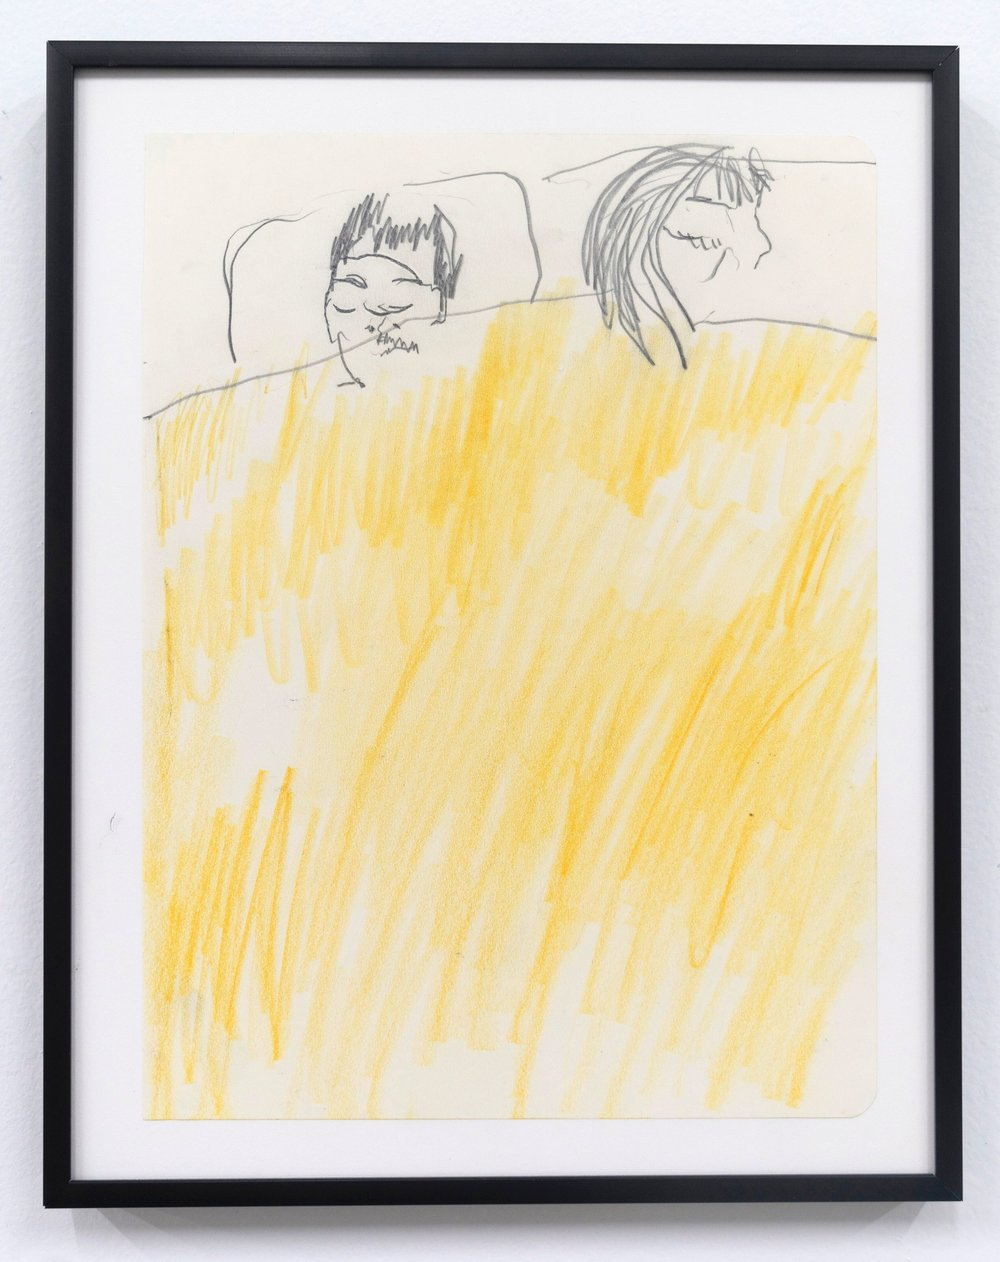 Emilie Gossiaux    Sleeping , 2018 Ink on newsprint   11 1/2 x 9 1/8 inches 29.2 x 23.2 cm